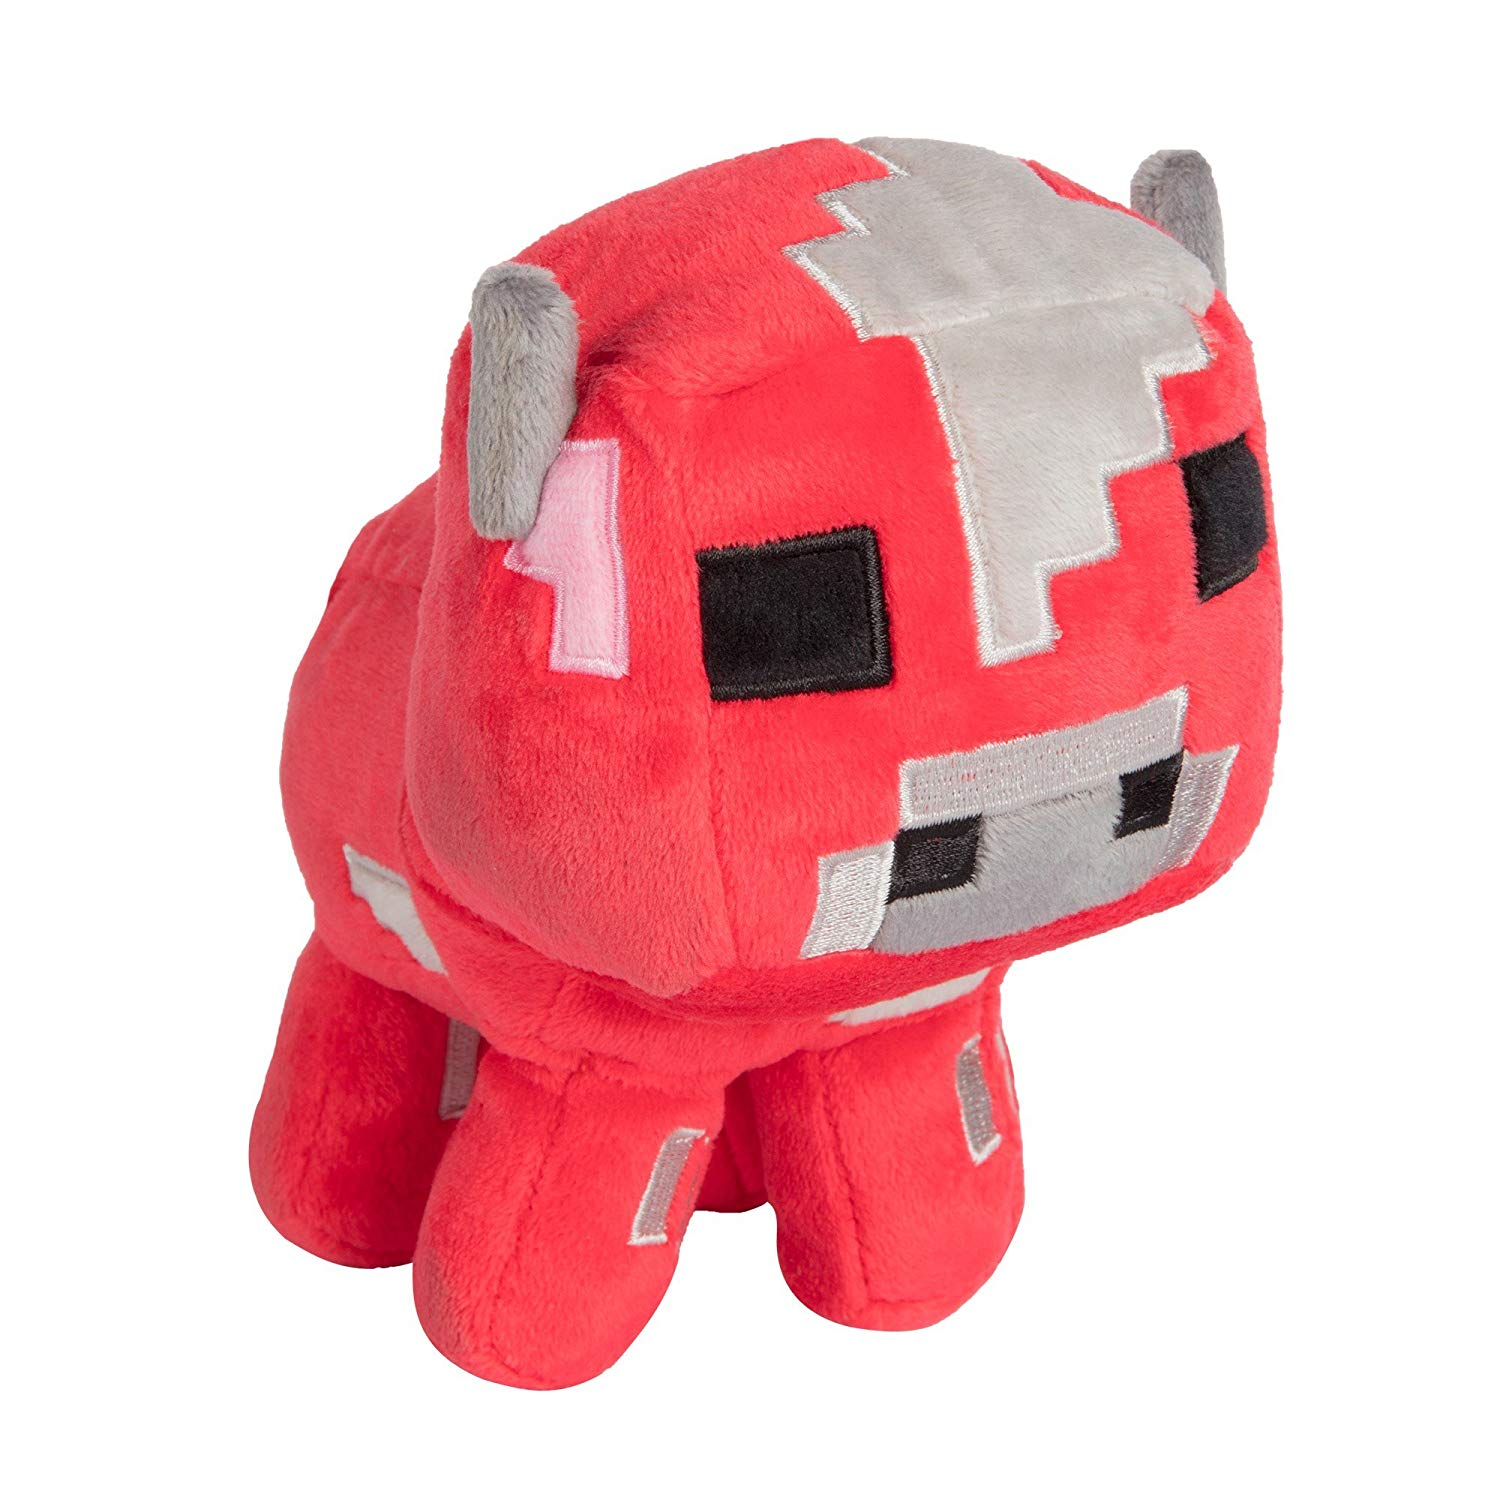 Minecraft Happy Explorer Baby Mooshroom Plüss